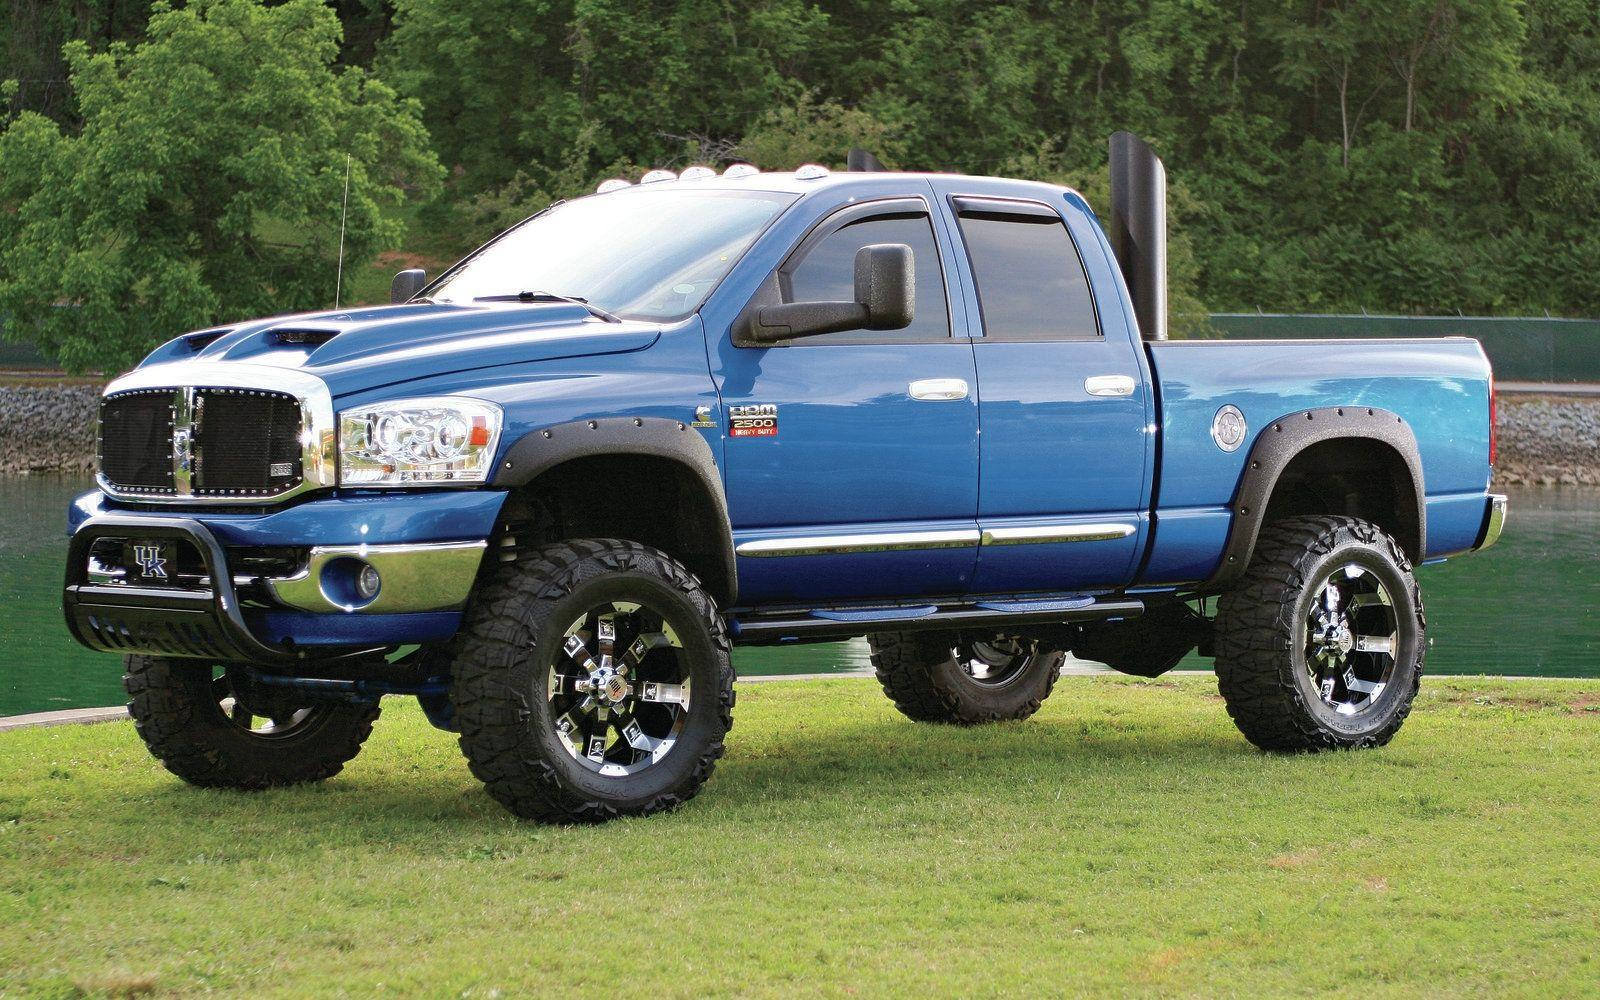 Dodge Ram 2500 Wallpapers and Backgrounds Image